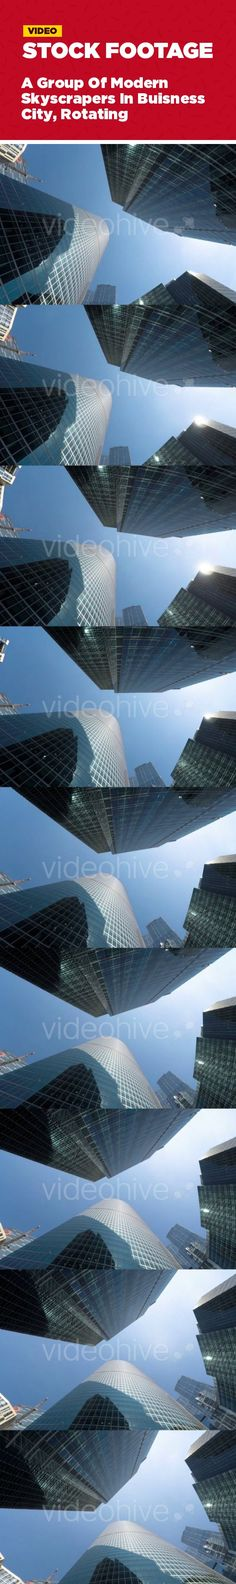 business, city, downtown, finance, financial, glass, inversion, jet, plane, reflection, skyscraper, successful, timelapse, tower, trace PLEASE RATE AFTER BUYING IT!   A group of modern skyscrapers in buisness city, rotating timelapse, Inversion trace of the jet plane over the city, suitable for – architecture, background, blue, building, center, cityscape, close, close up, closeup, clouds, concept, construction, contemporary, day, design, development, economy, europe, exterior, fantastic...